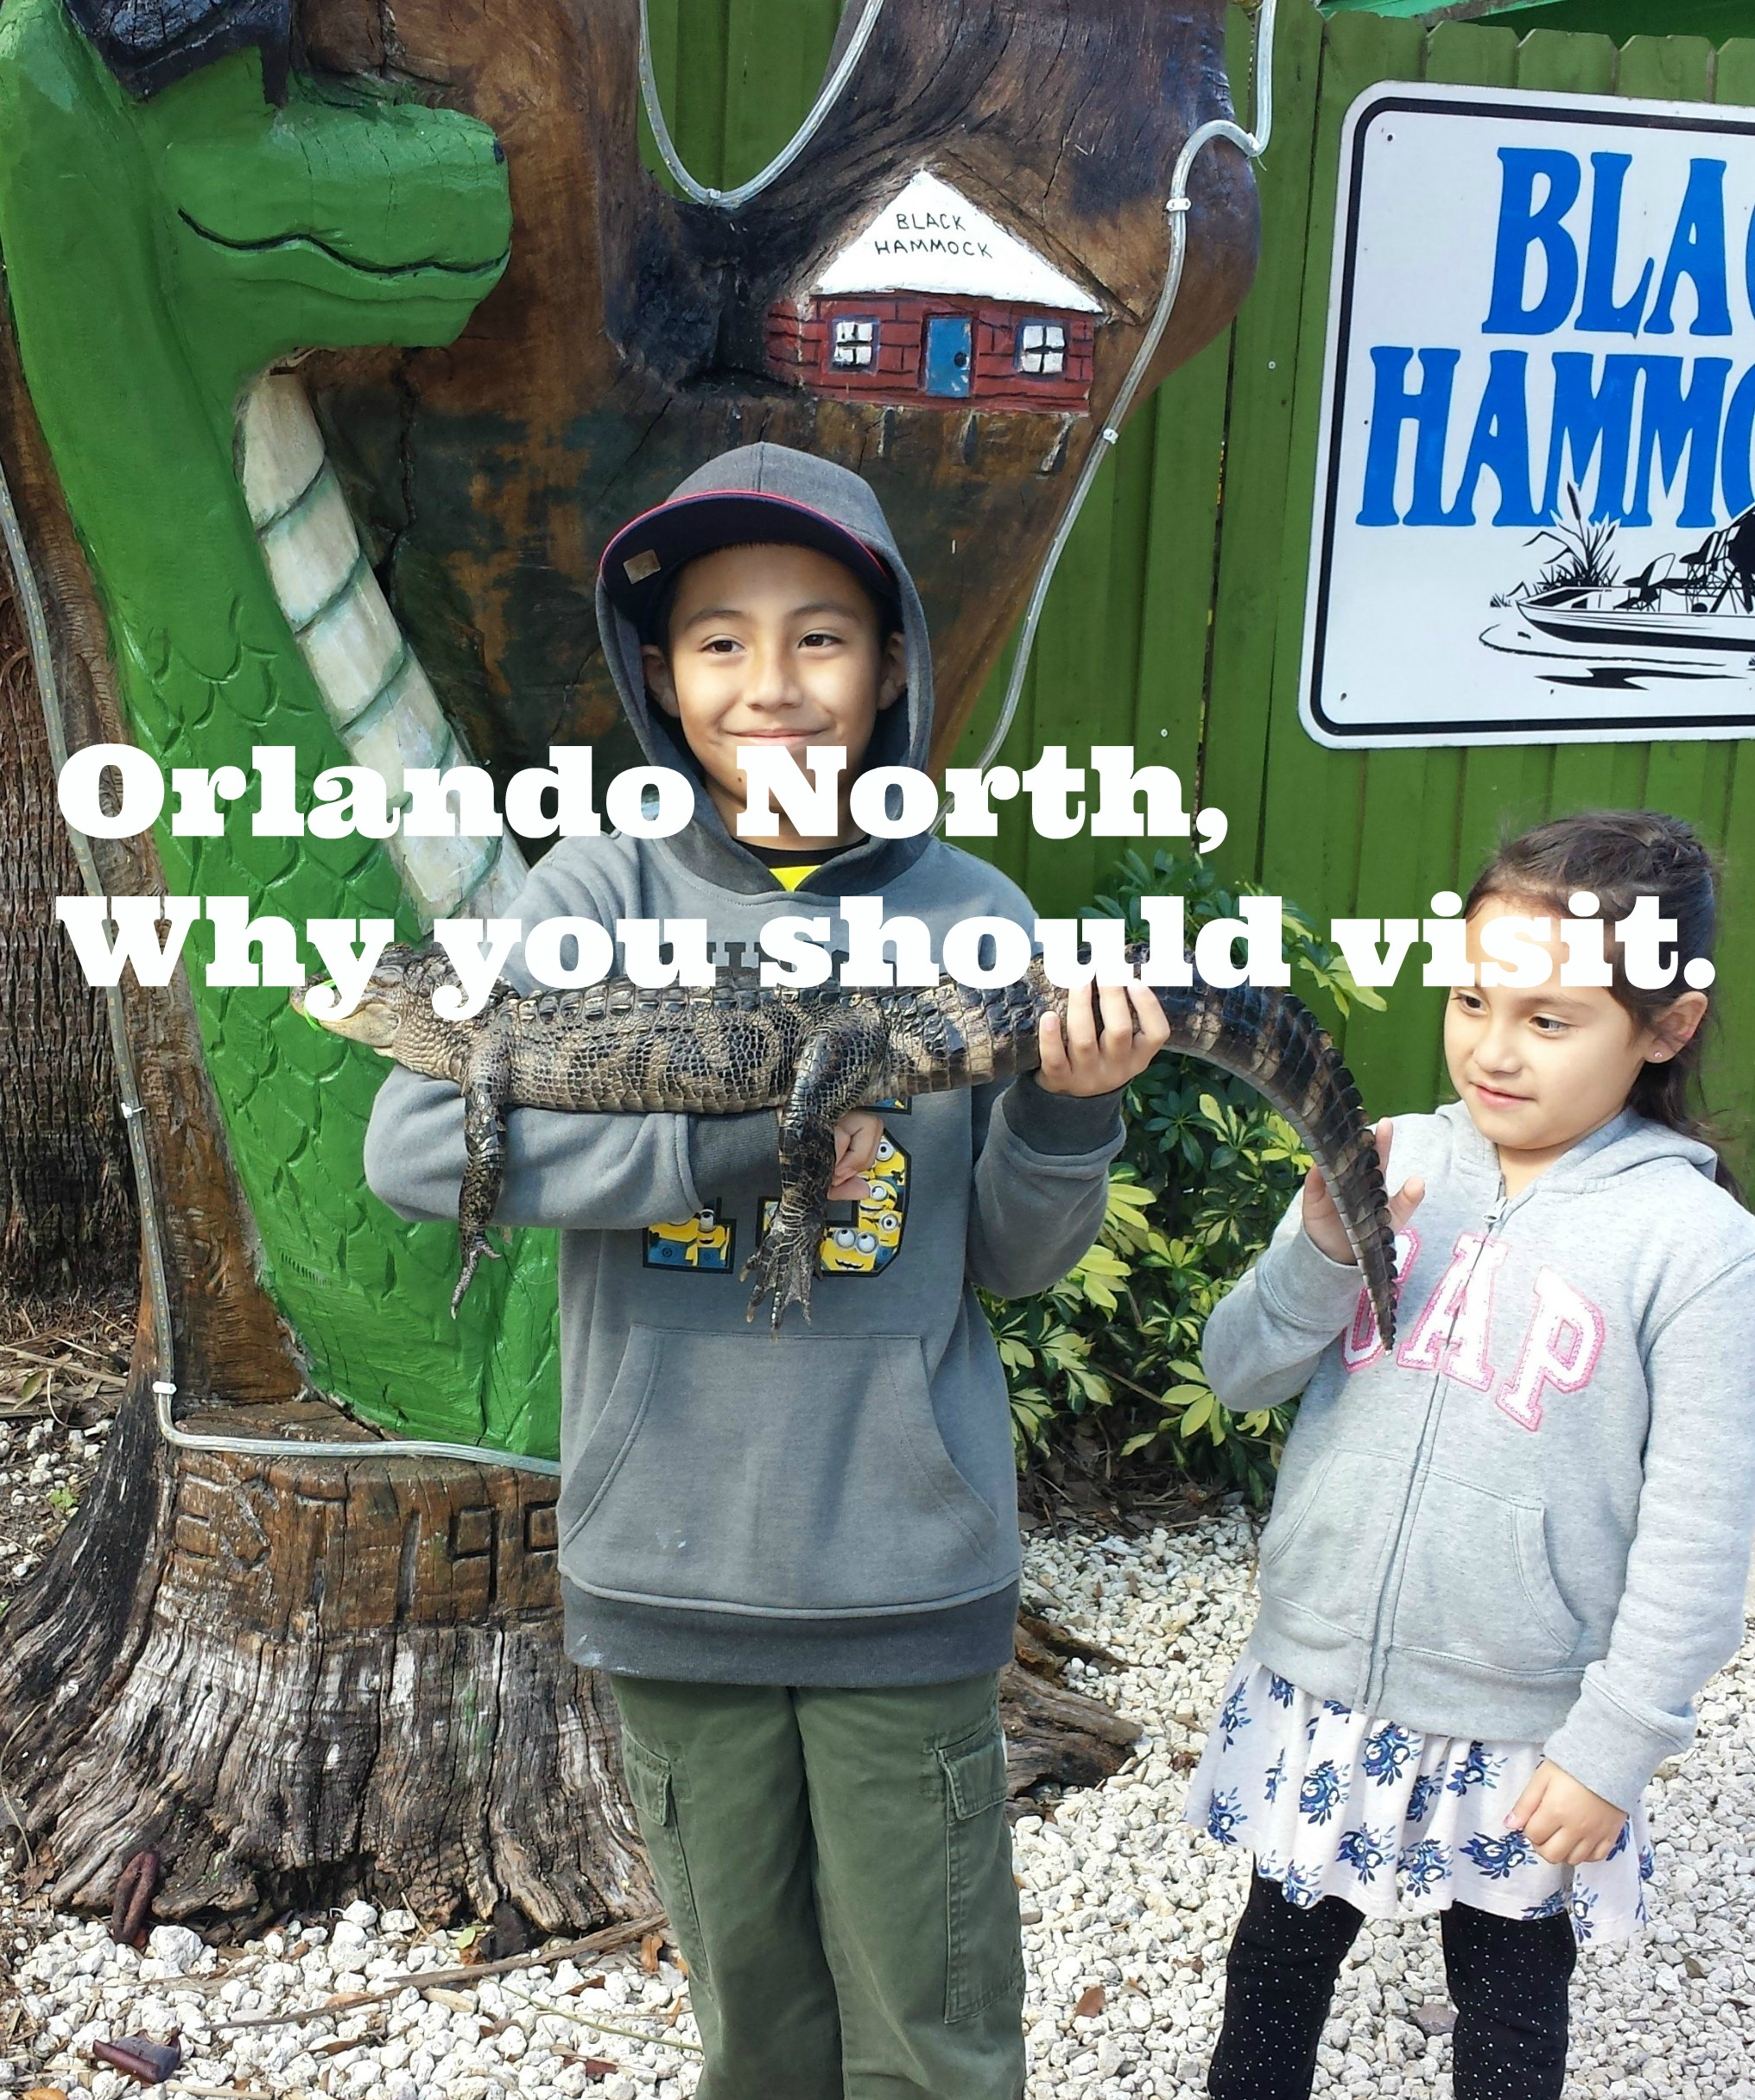 Orlando North, why you should visit